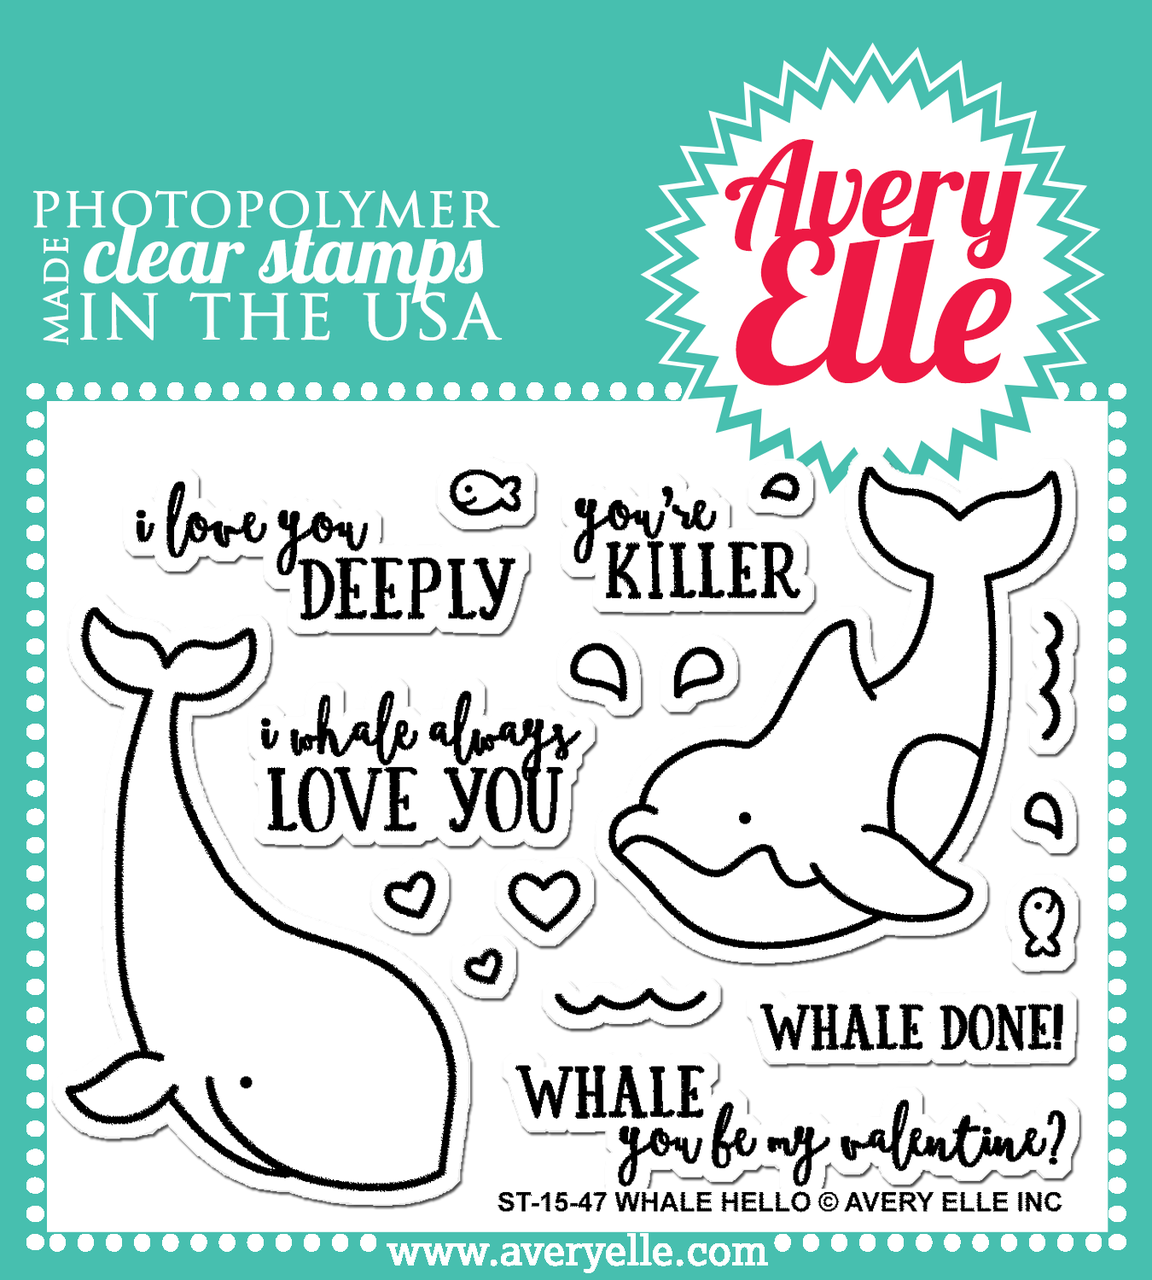 http://www.averyelle.com/whale-hello-clear-stamps/#_a_32